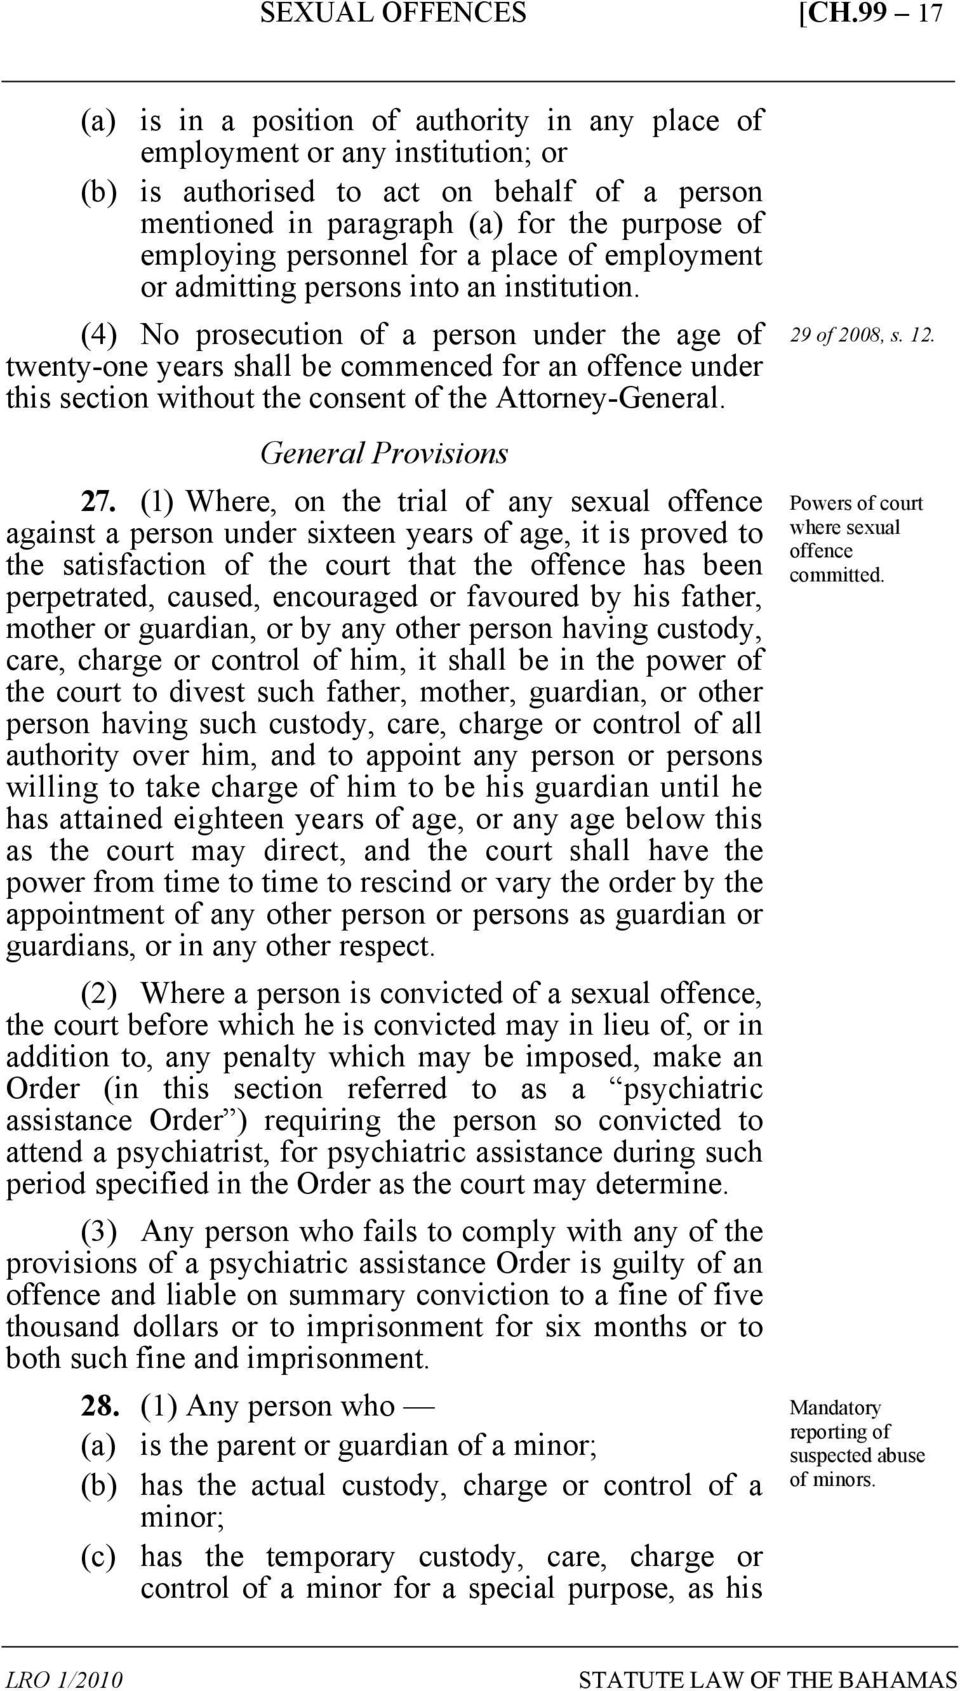 (4) No prosecution of a person under the age of twenty-one years shall be commenced for an offence under this section without the consent of the Attorney-General. General Provisions 27.